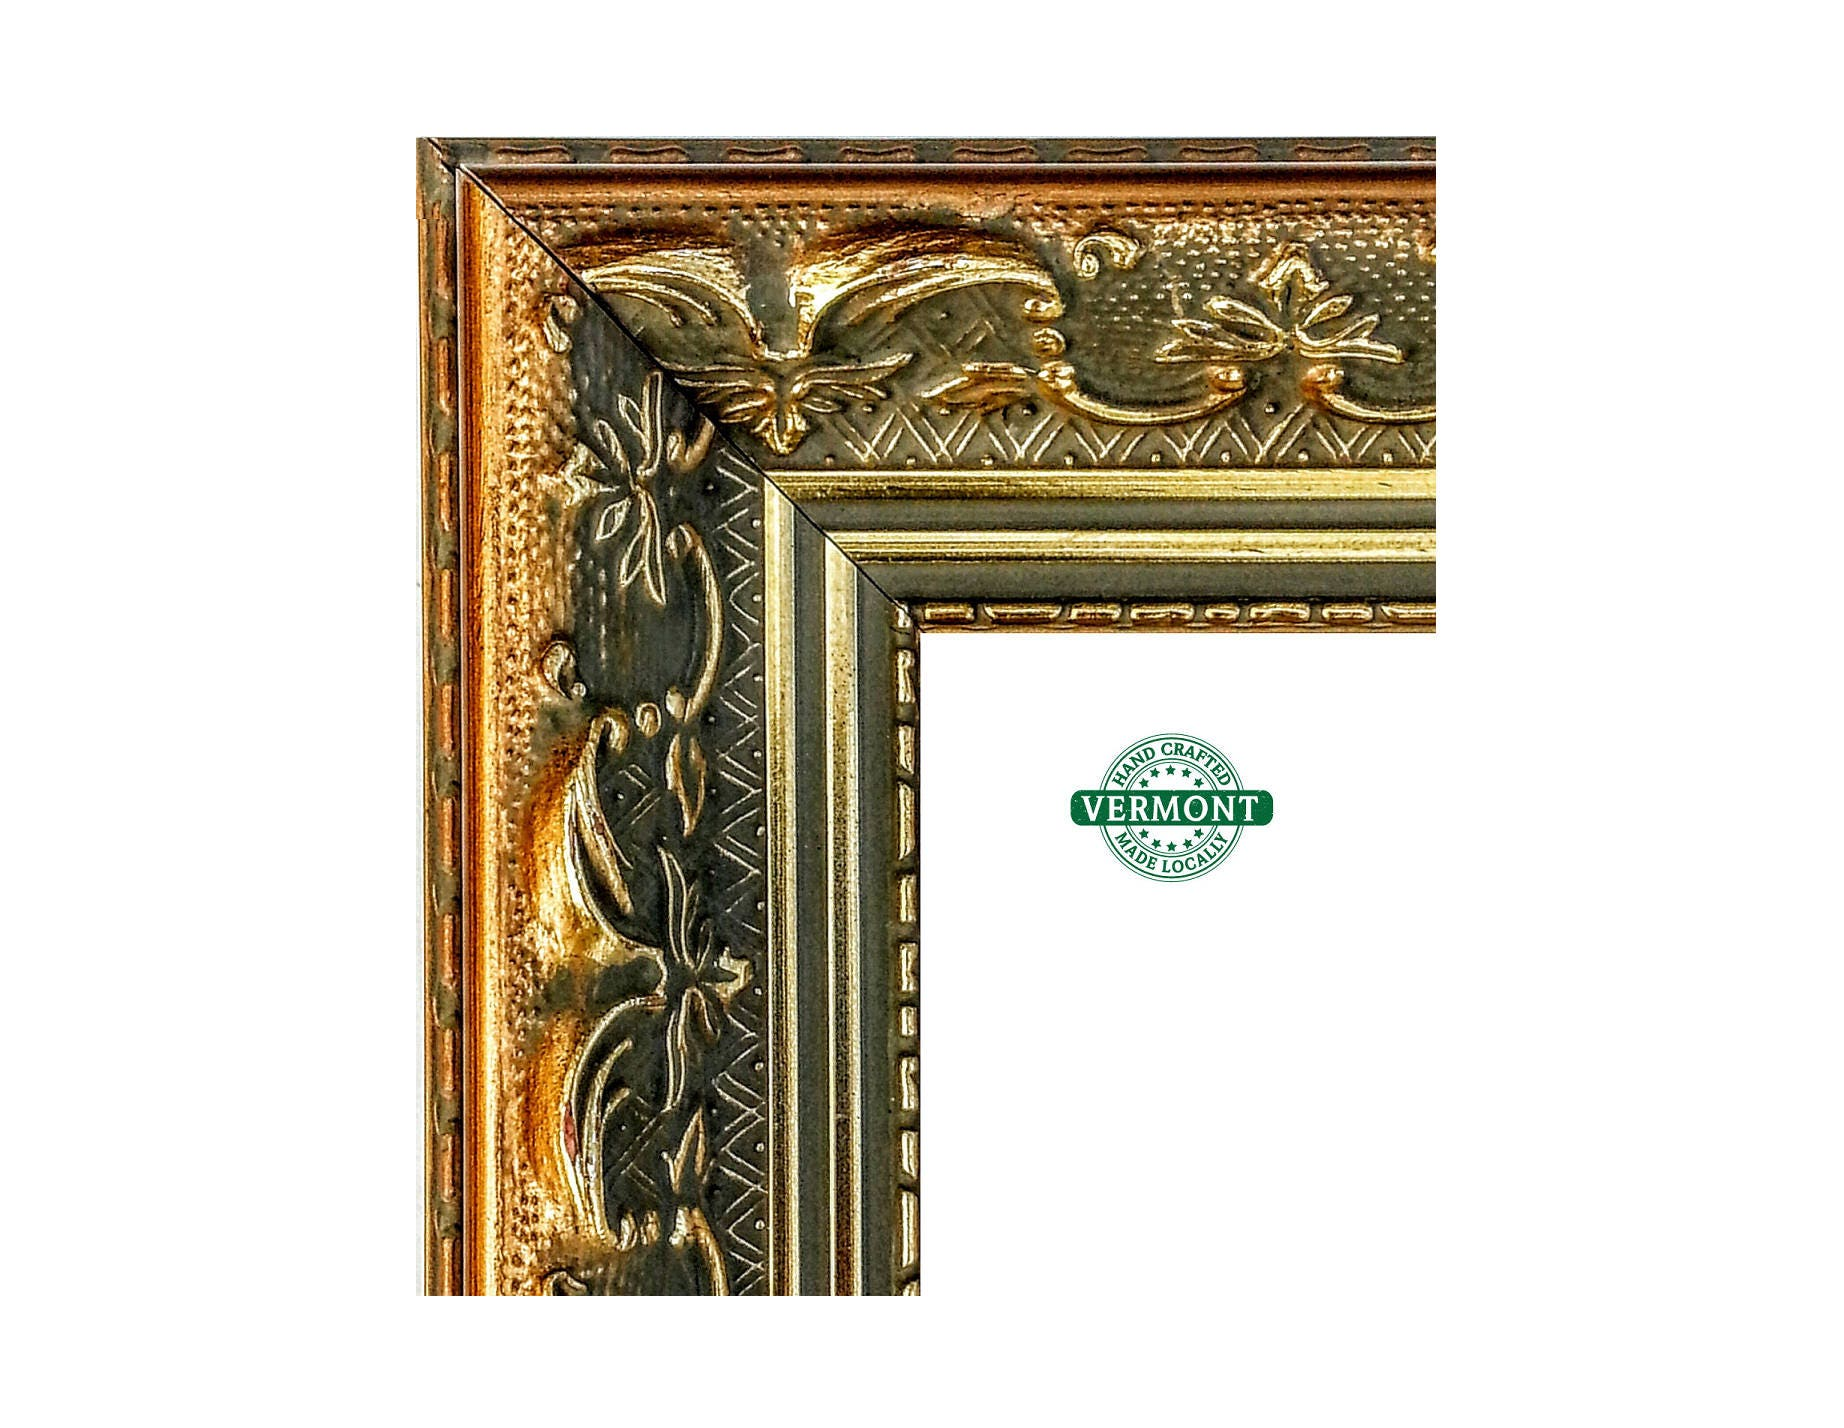 French Ornate Gold Picture Frame, Antique Gold Finish, Real Wood ...